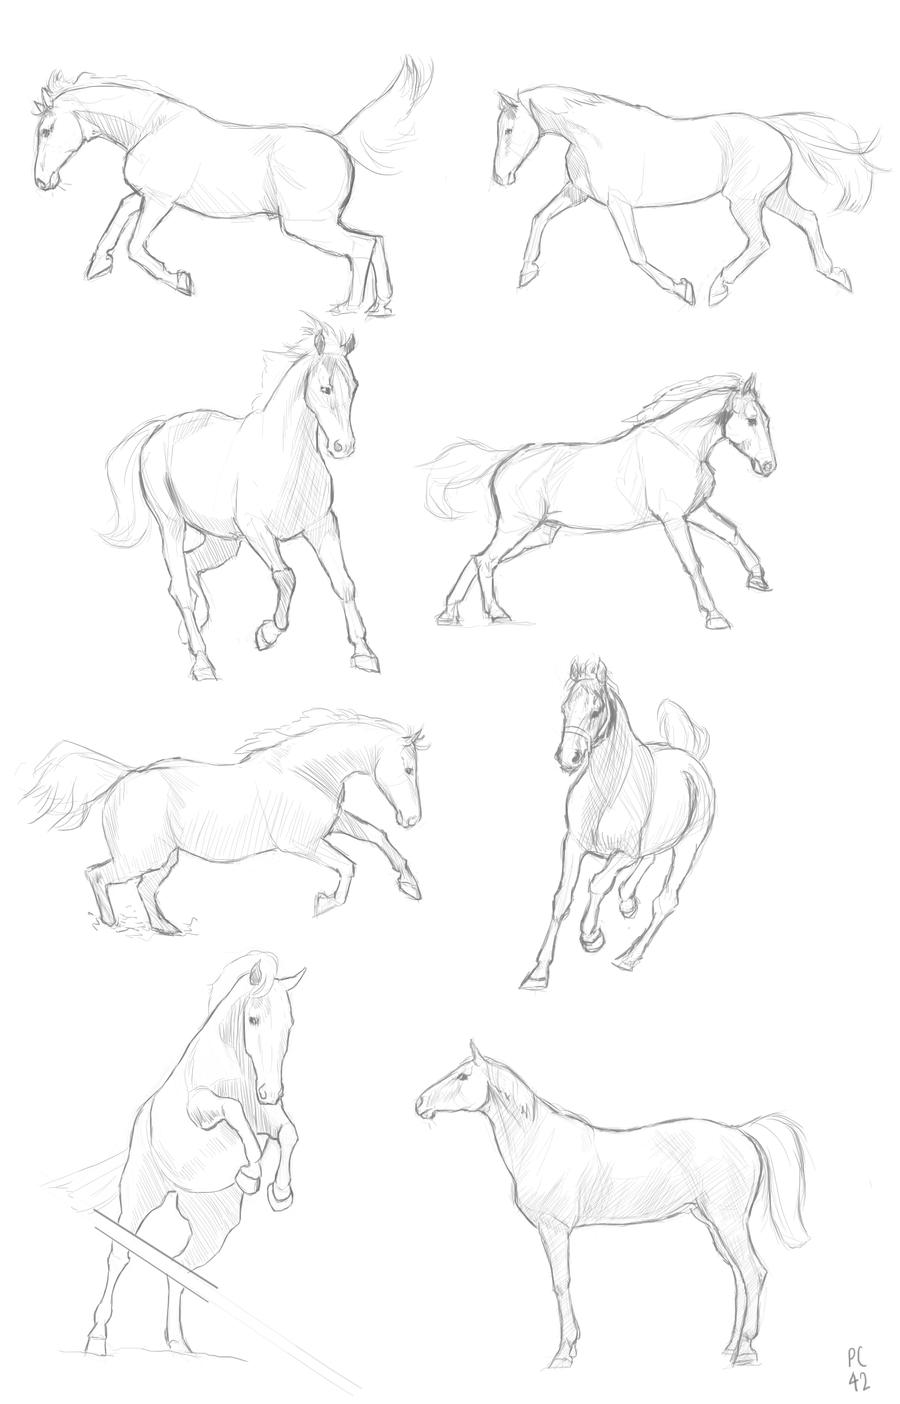 Horse Anatomy and Proportion Sketches by PonyCool42 on DeviantArt